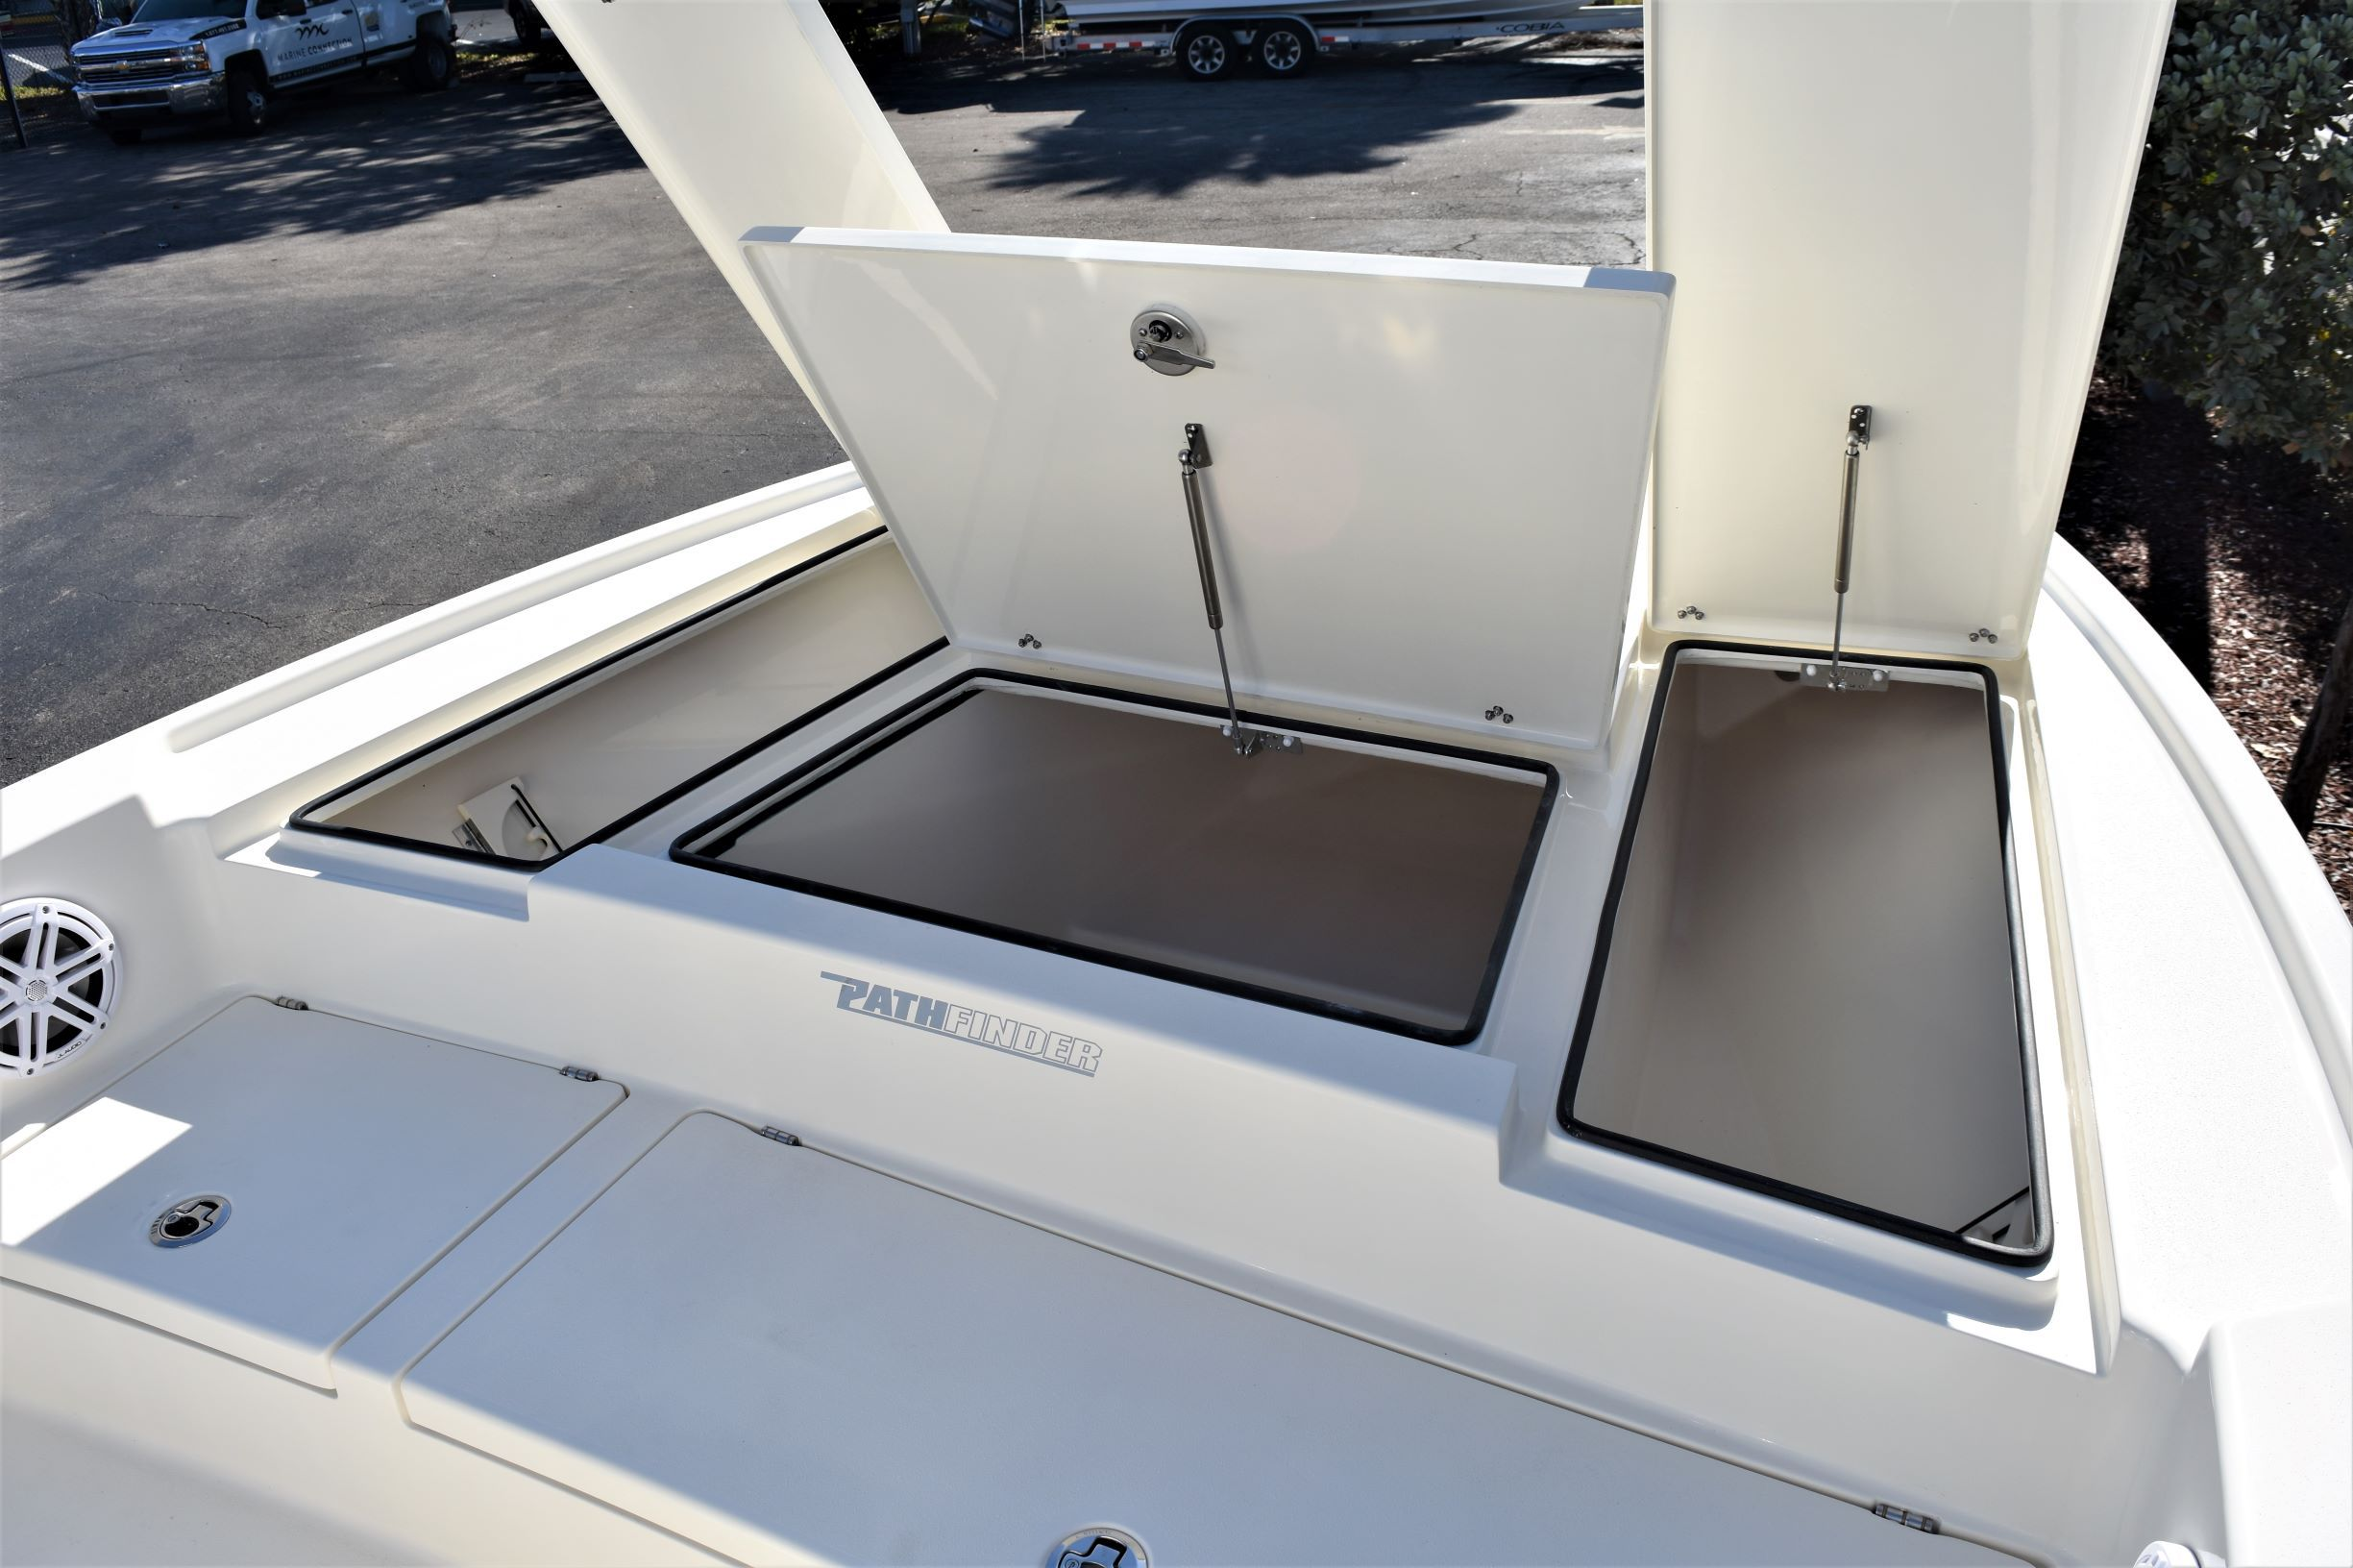 Thumbnail 32 for New 2020 Pathfinder 2500 Hybrid Bay Boat boat for sale in Vero Beach, FL